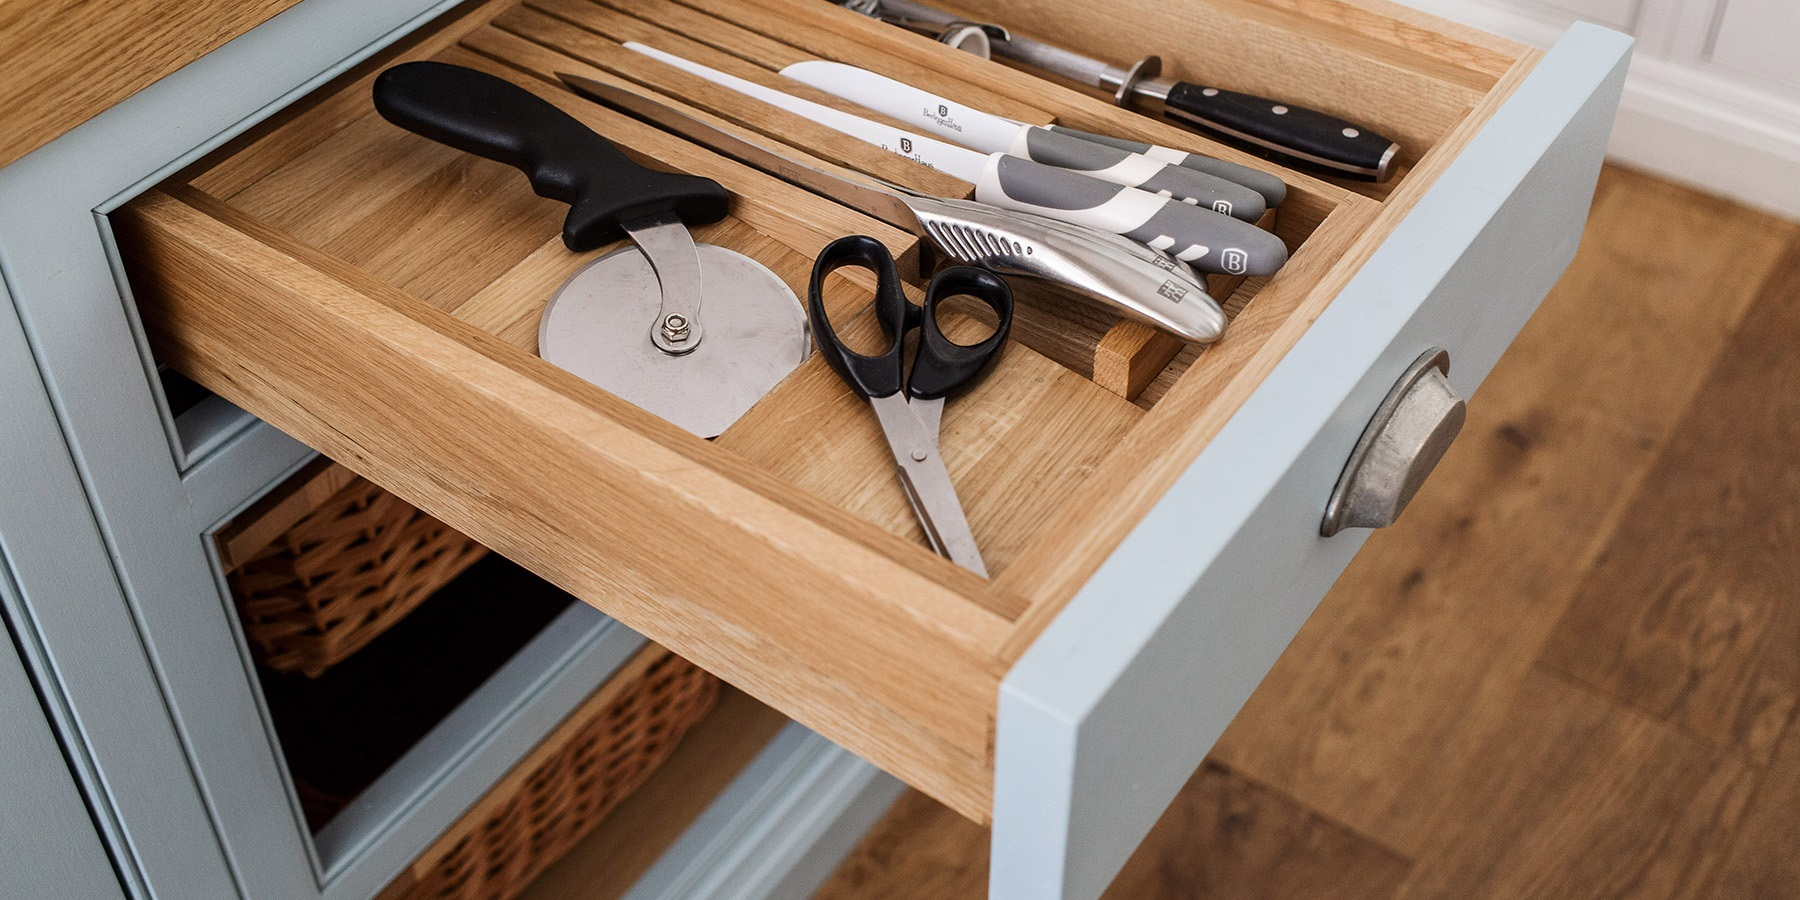 Burlanes Bespoke Cutlery Drawer - Handmade drawer boxes and oak cutlery drawer inserts.